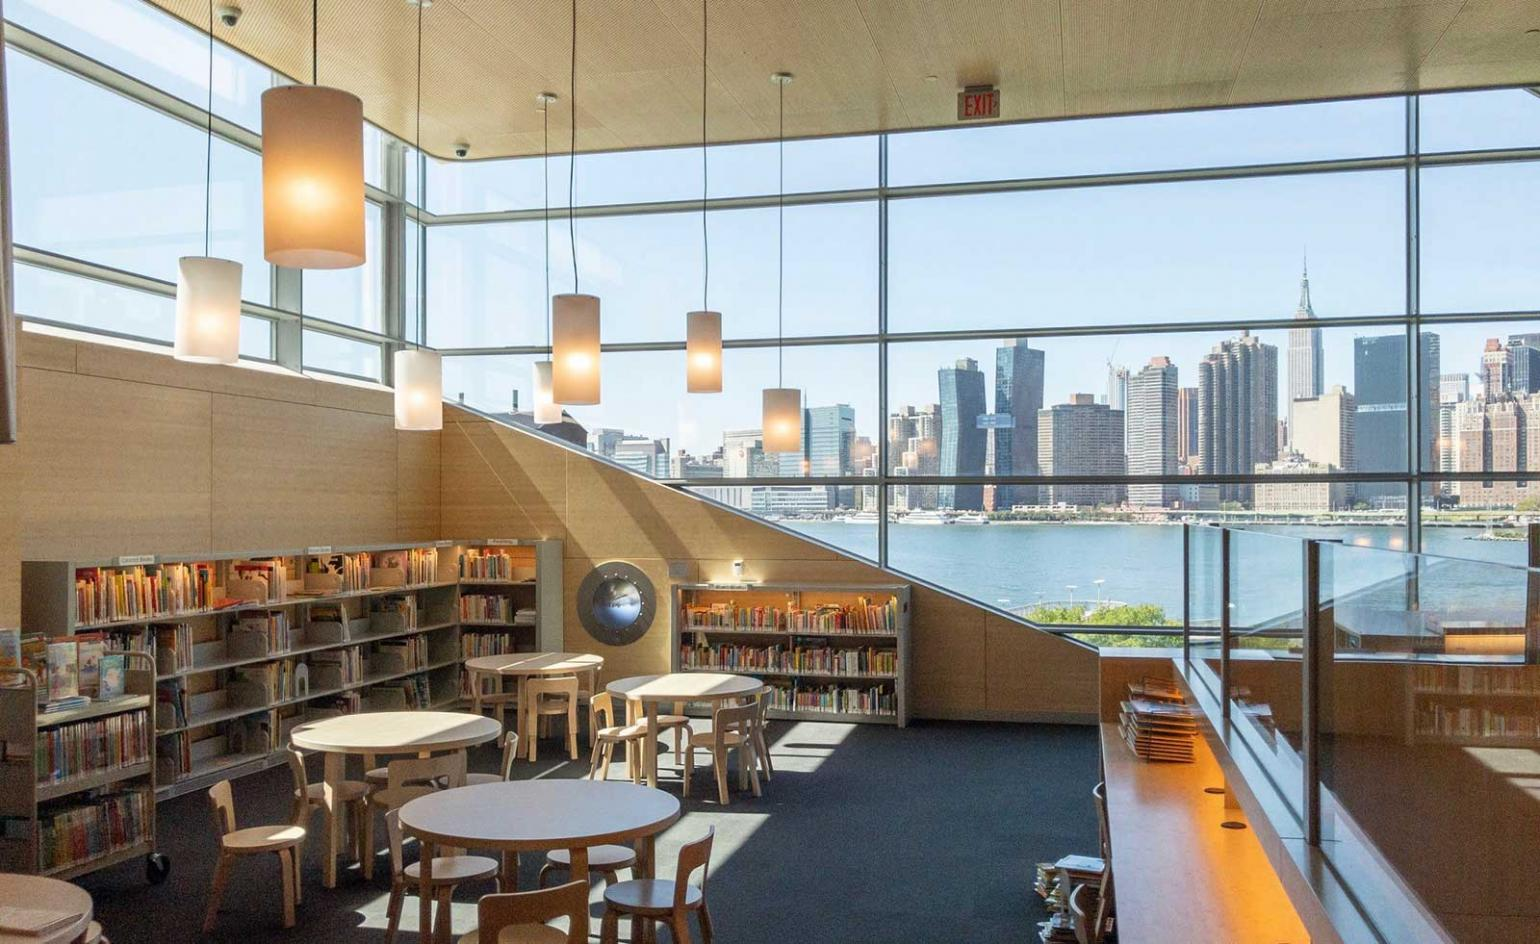 Hunters Point Library By Steven Holl Opens In New York